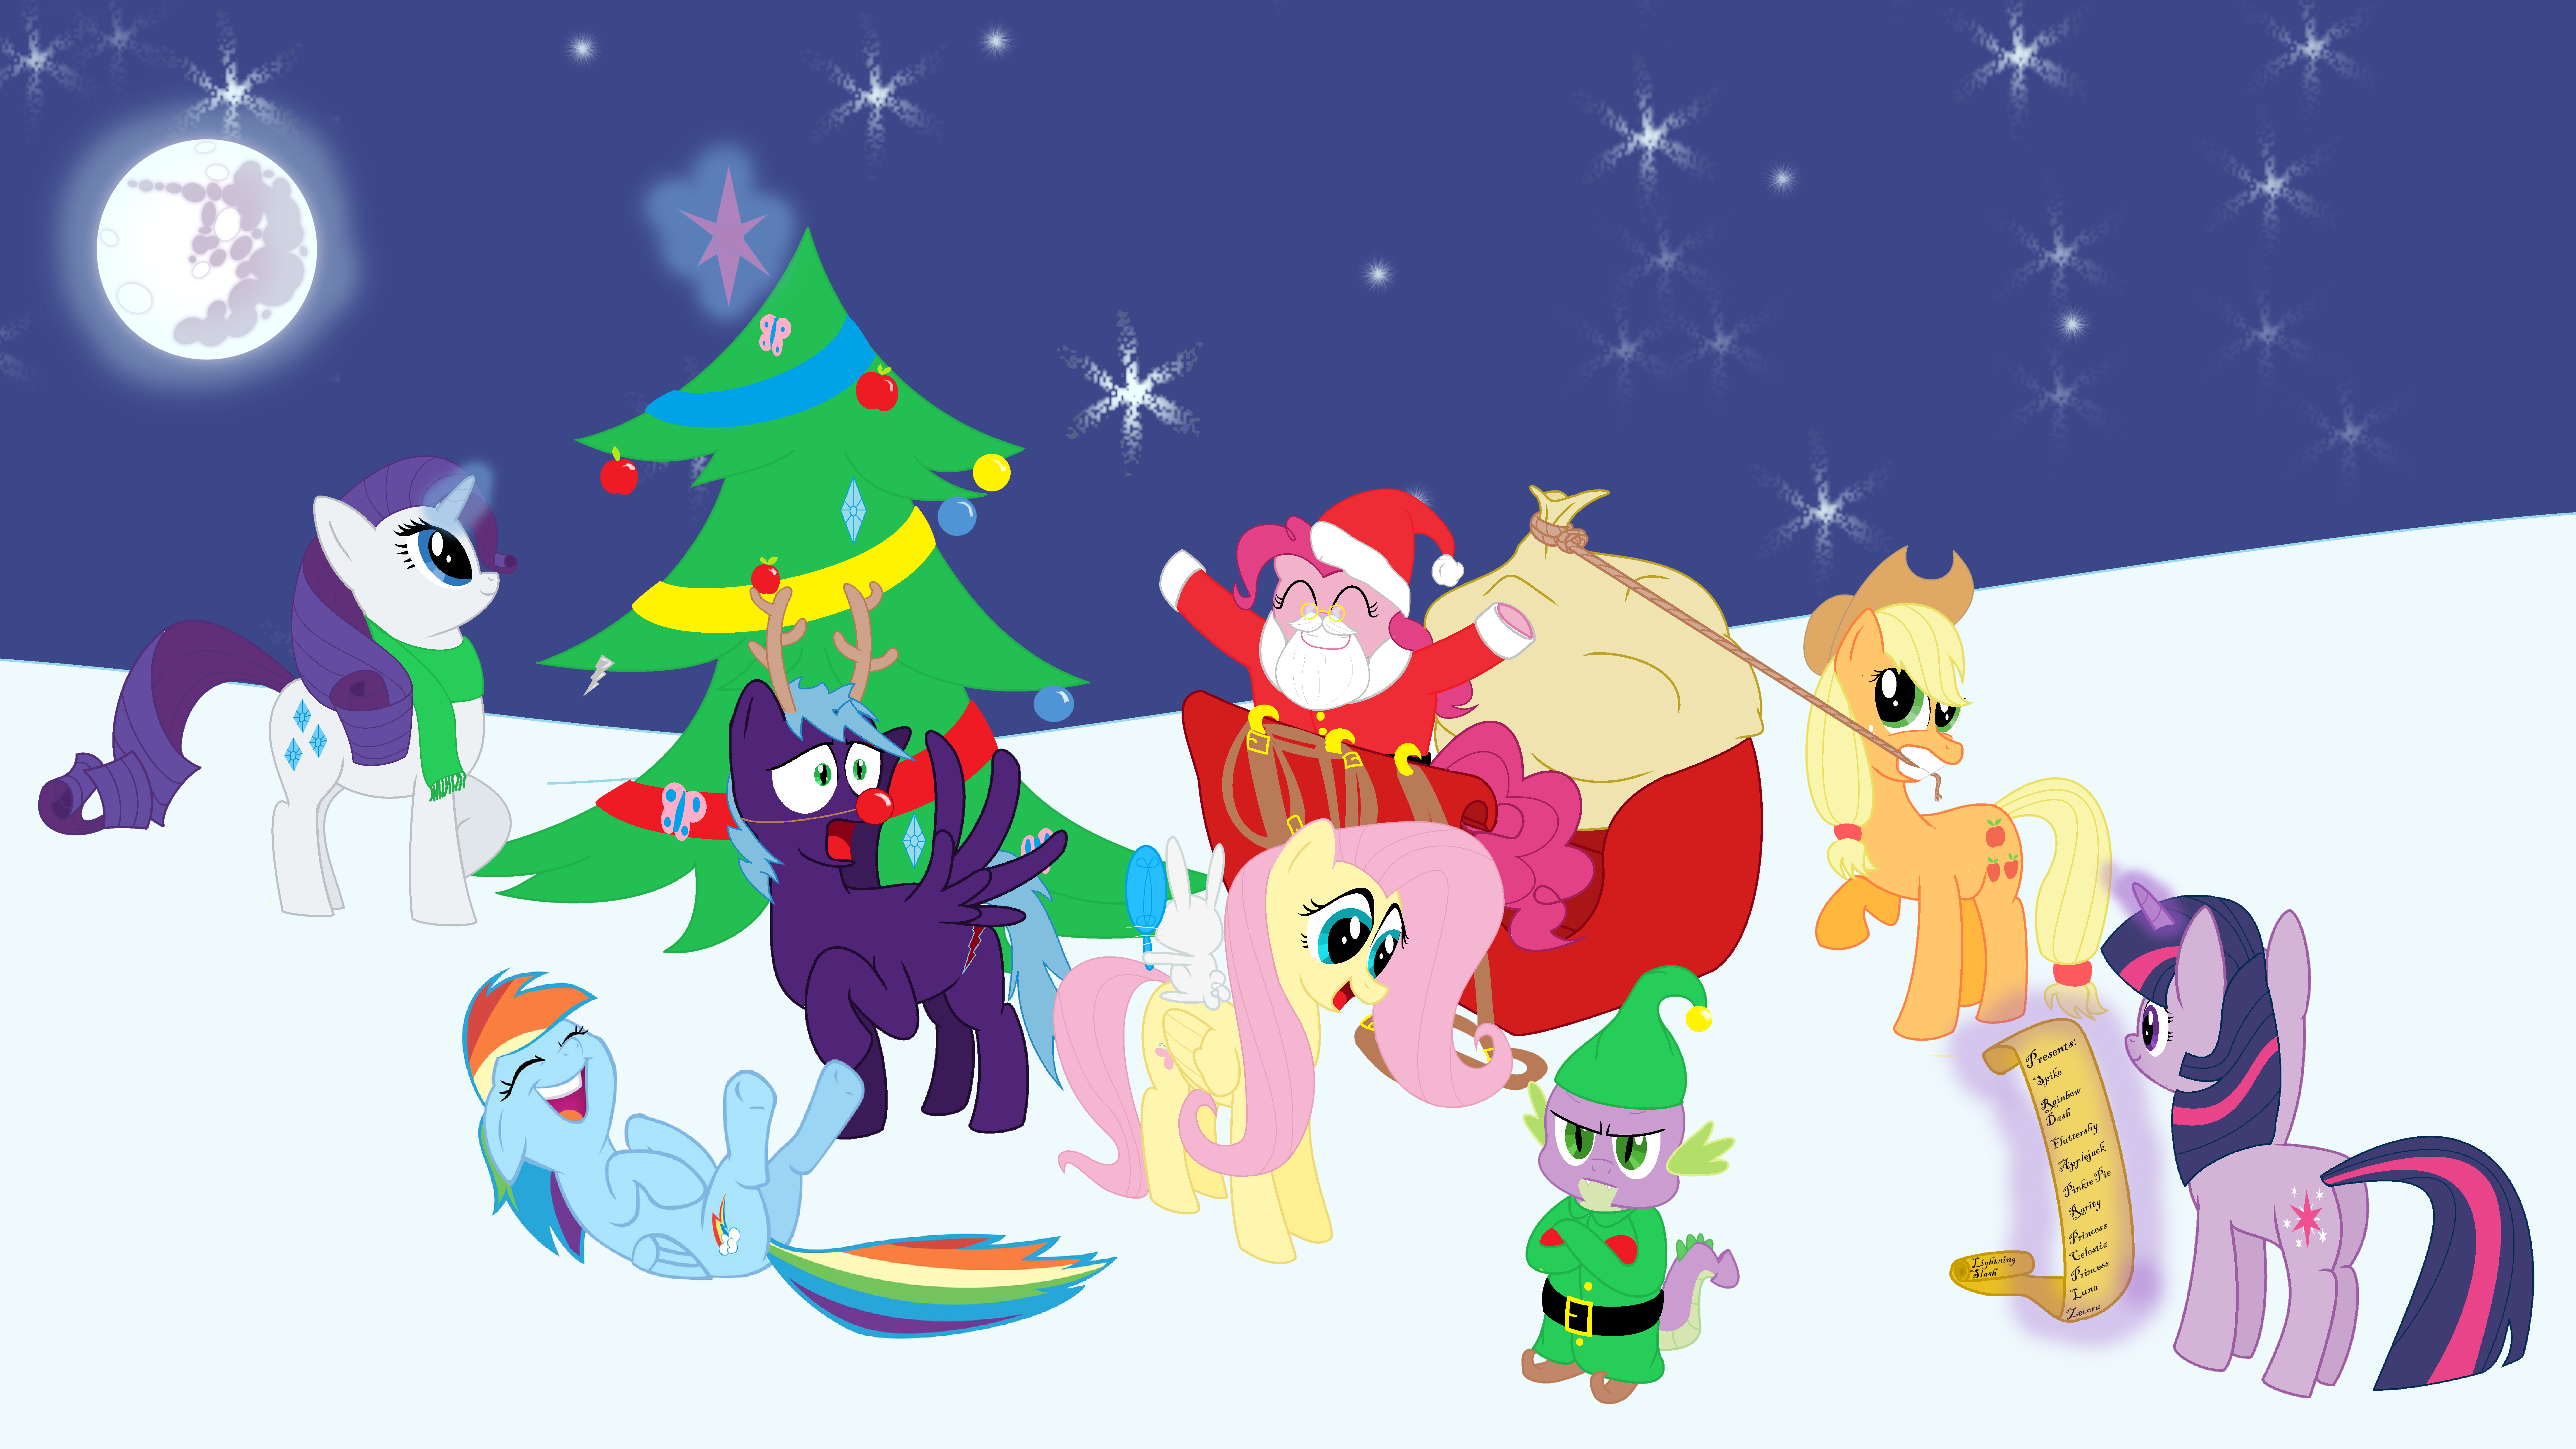 Wallpaper By Lightning Slash Merry Christmas And Happy New Year